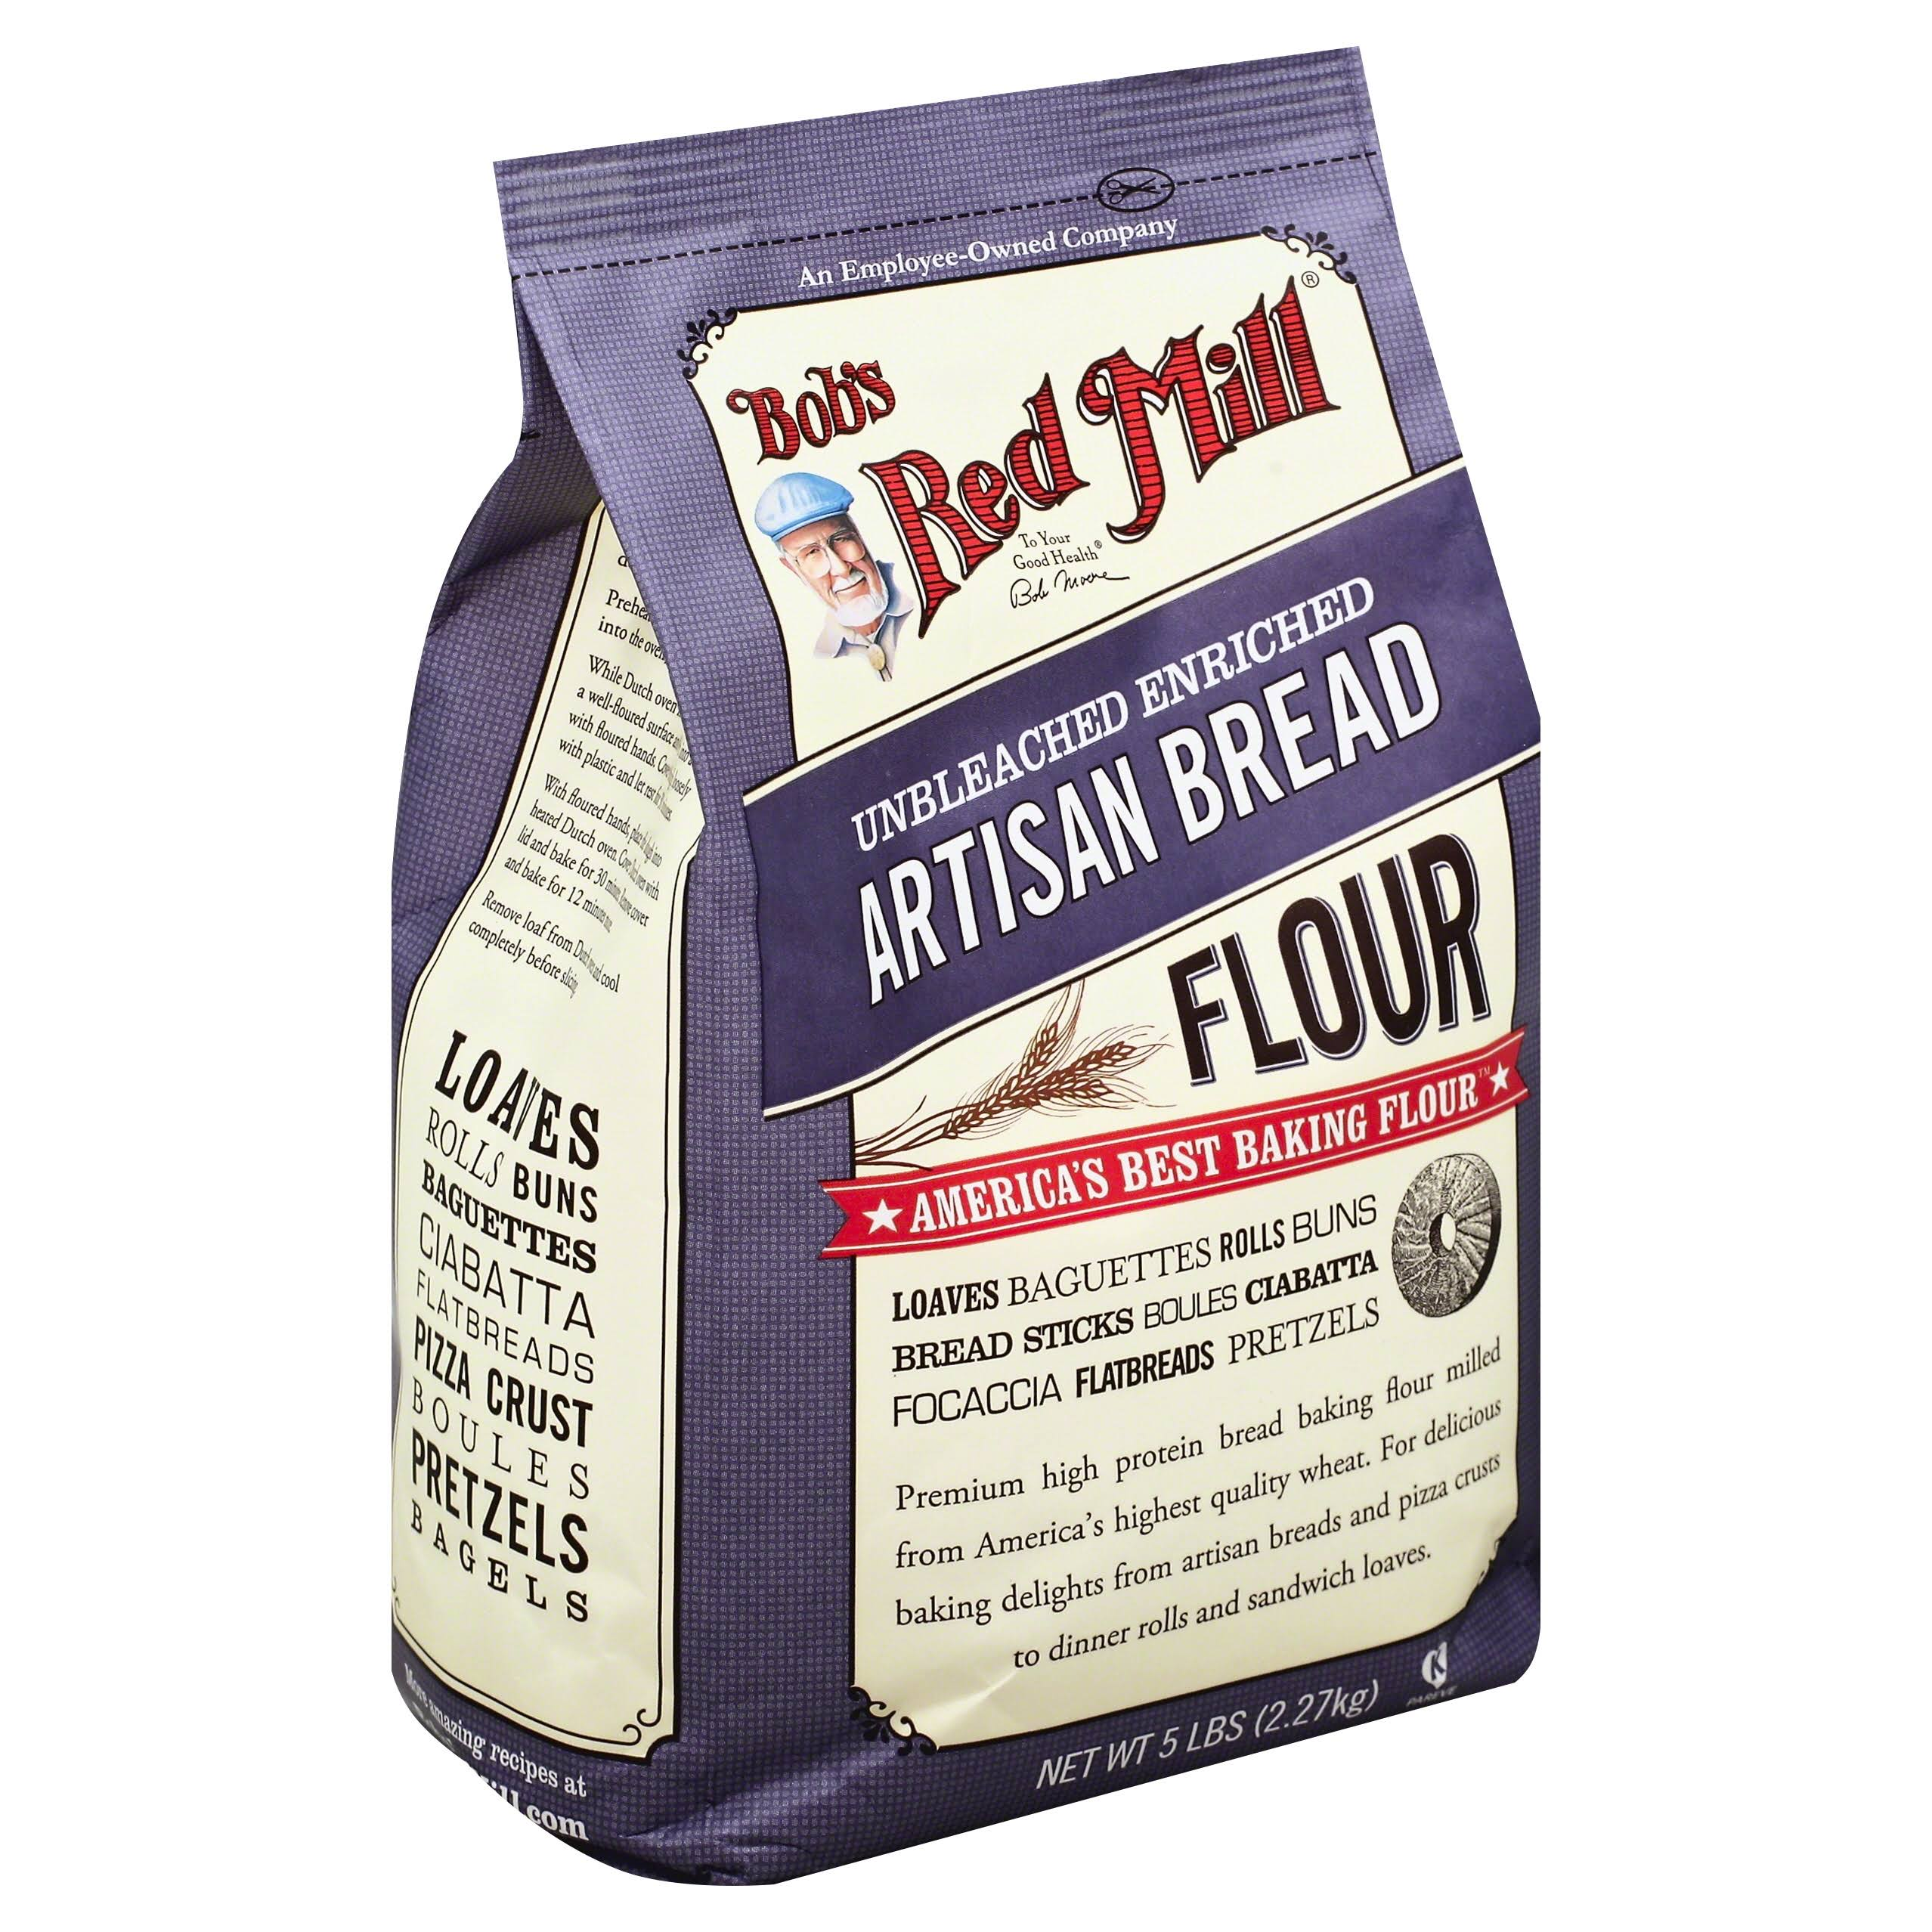 Bob's Red Mill Artisan Bread Flour - 5lbs